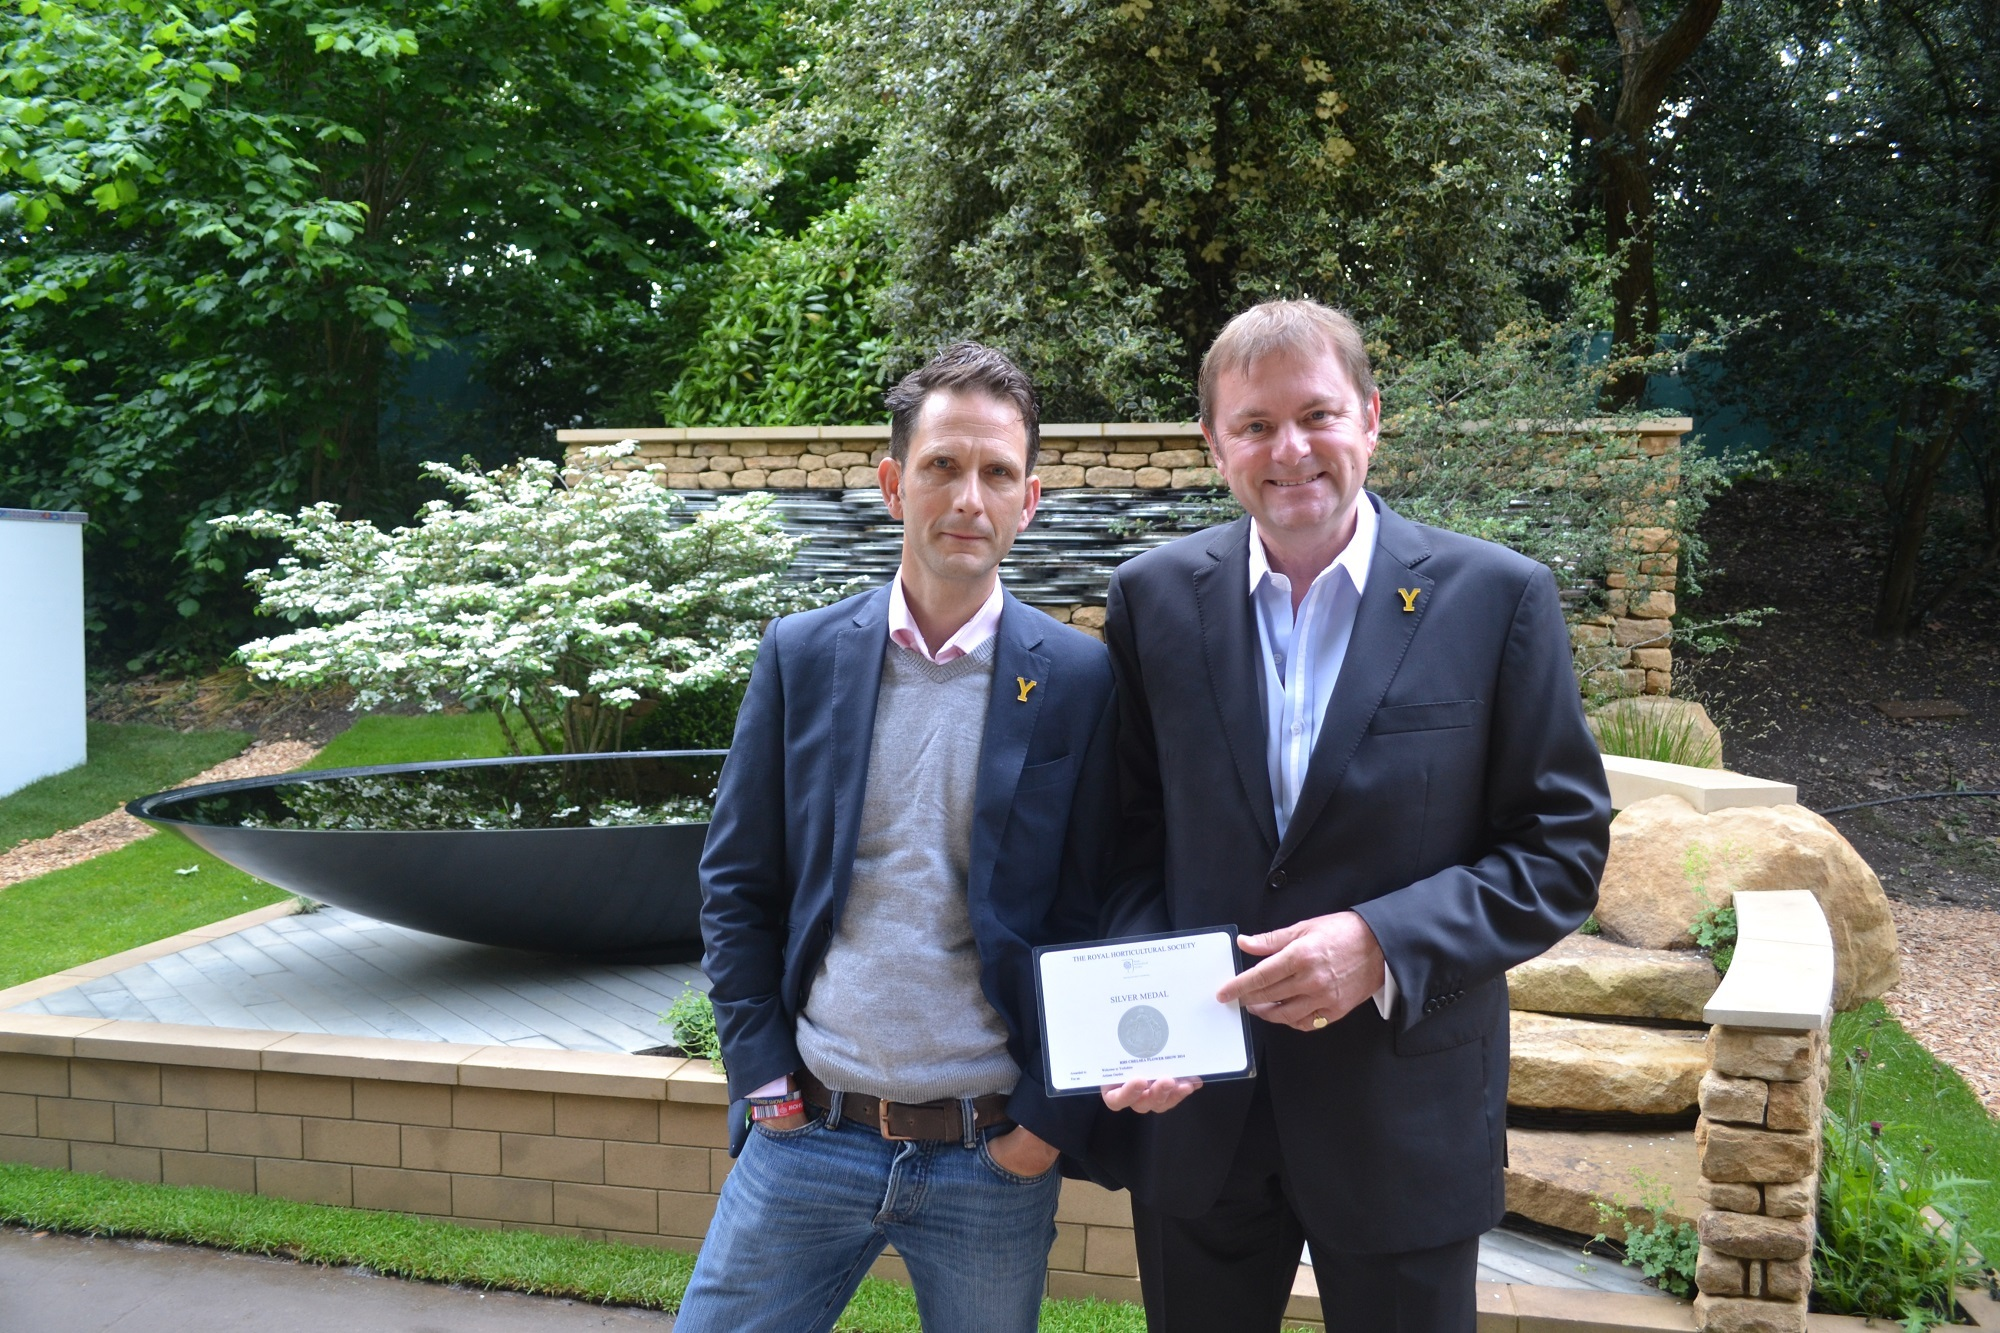 FLOWER SHOW: Designer Alistair Baldwin, left, with Gary Verity and the award winning garden